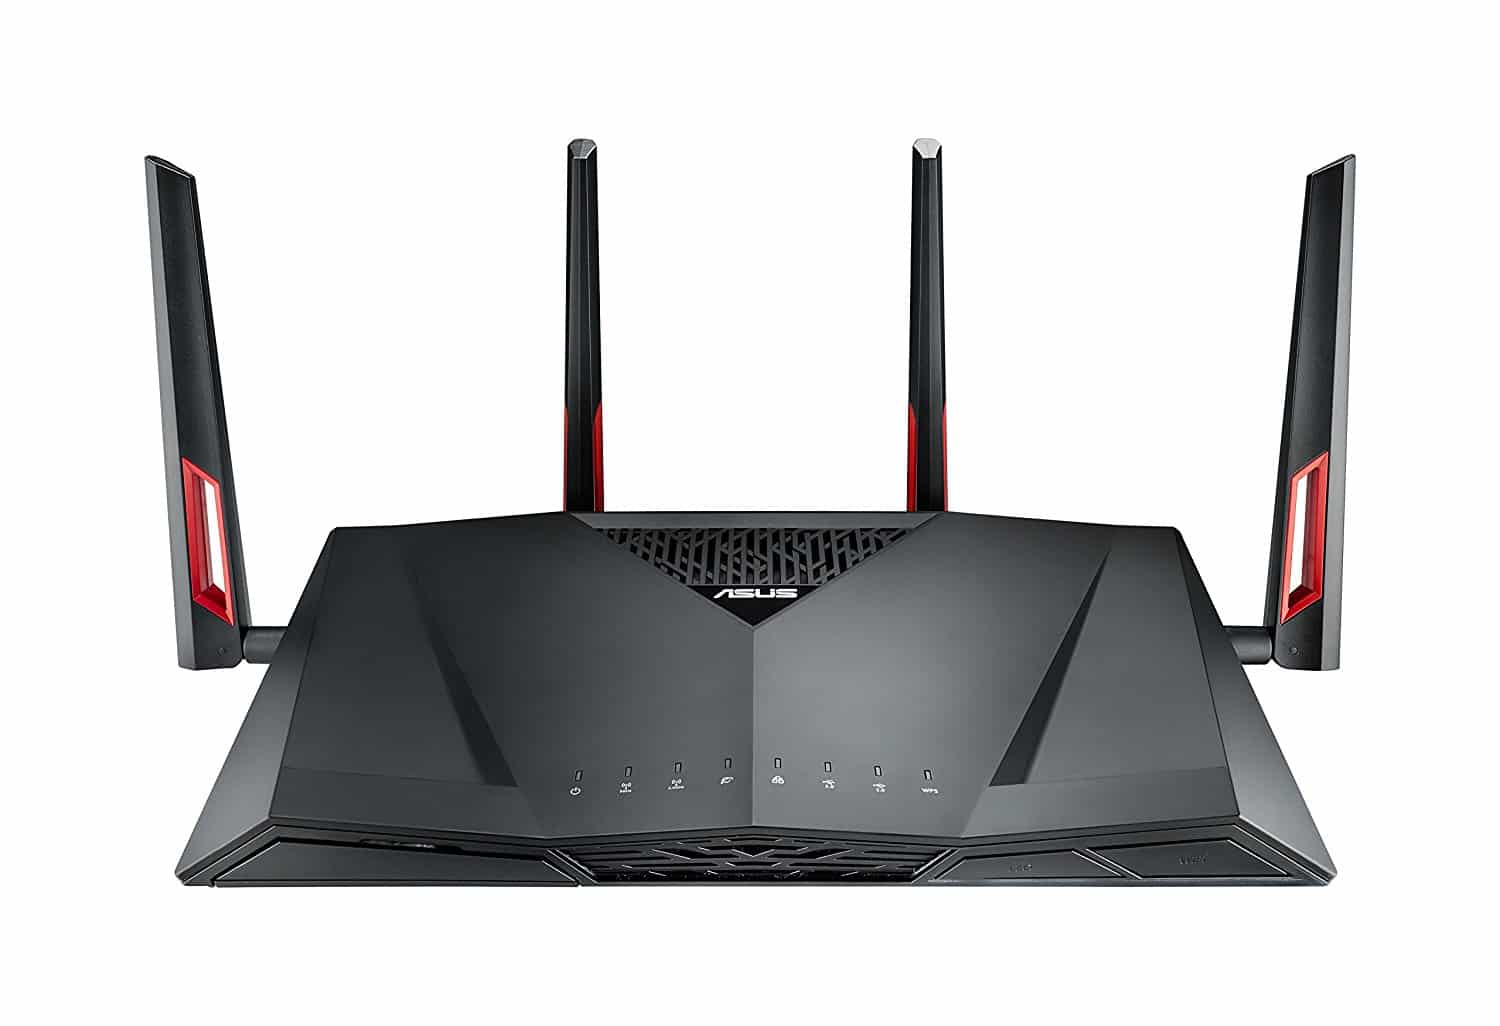 Asus RT-AC88U Dual Band Wifi router with the Best Range